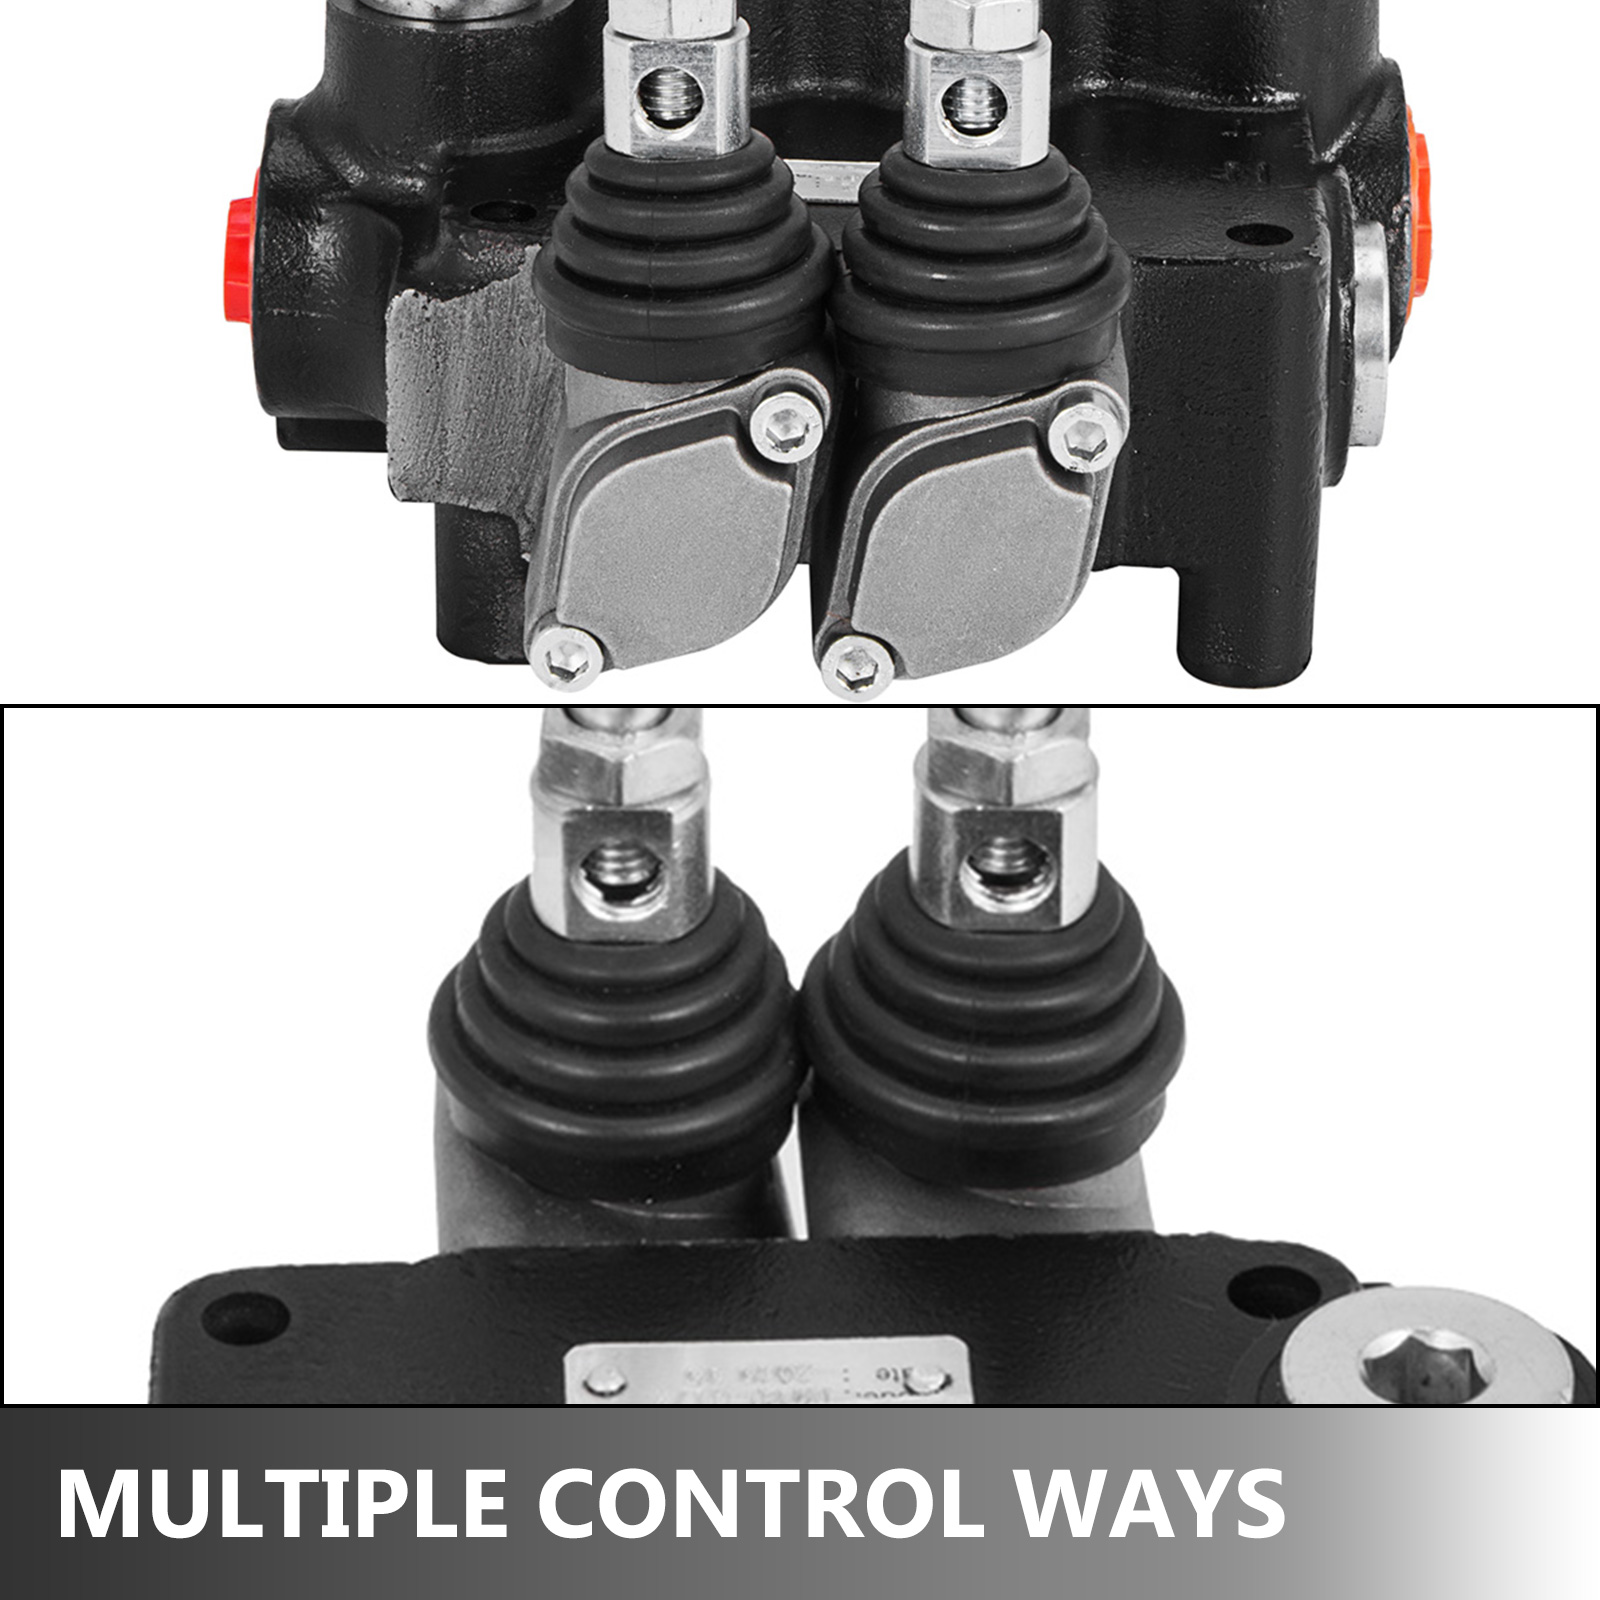 2-Spool-Hydraulic-Control-Valve-21GPM-Double-Acting-Monoblock-Log-Small-Tractors thumbnail 6